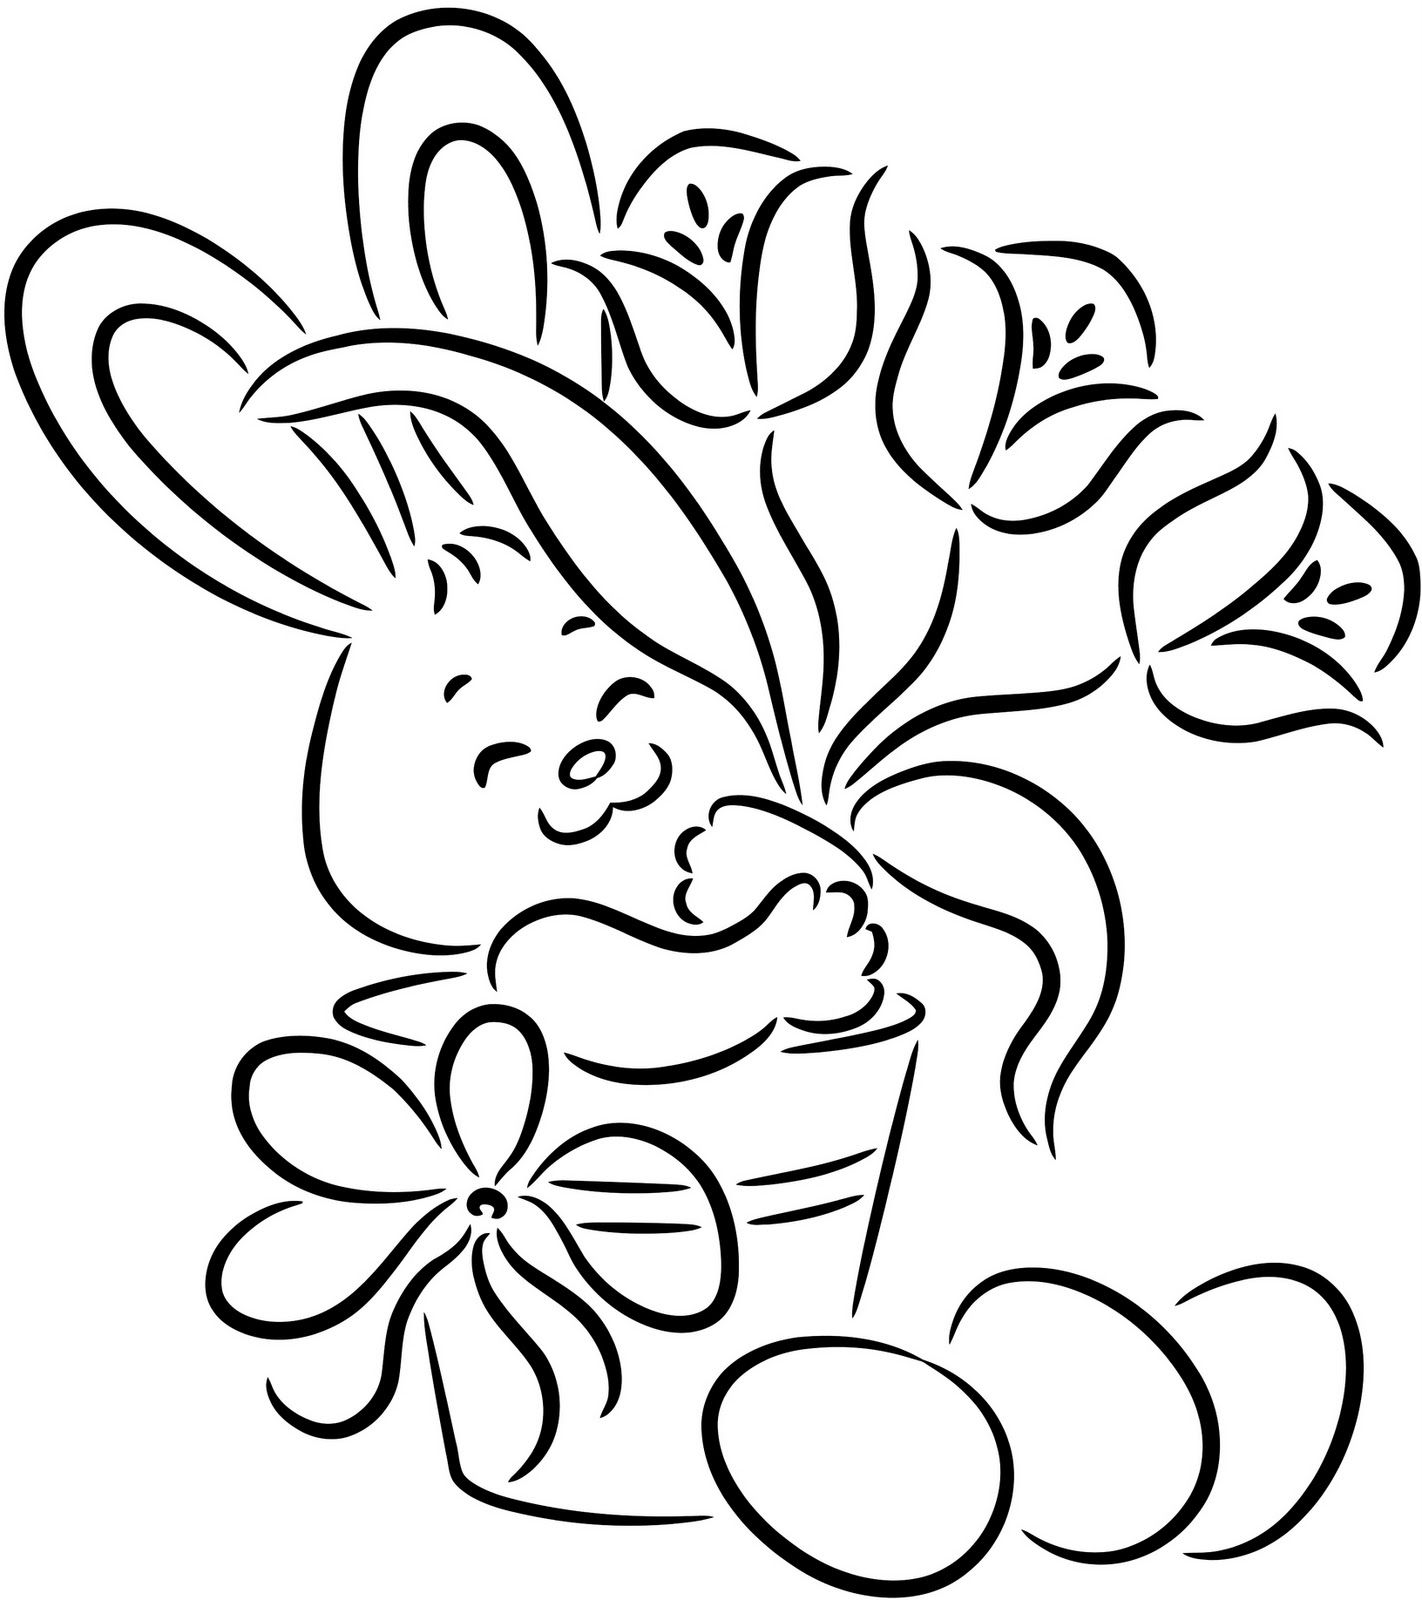 Fun Free Mermaid Games Easter Bunny Coloring Pages Stock Videos